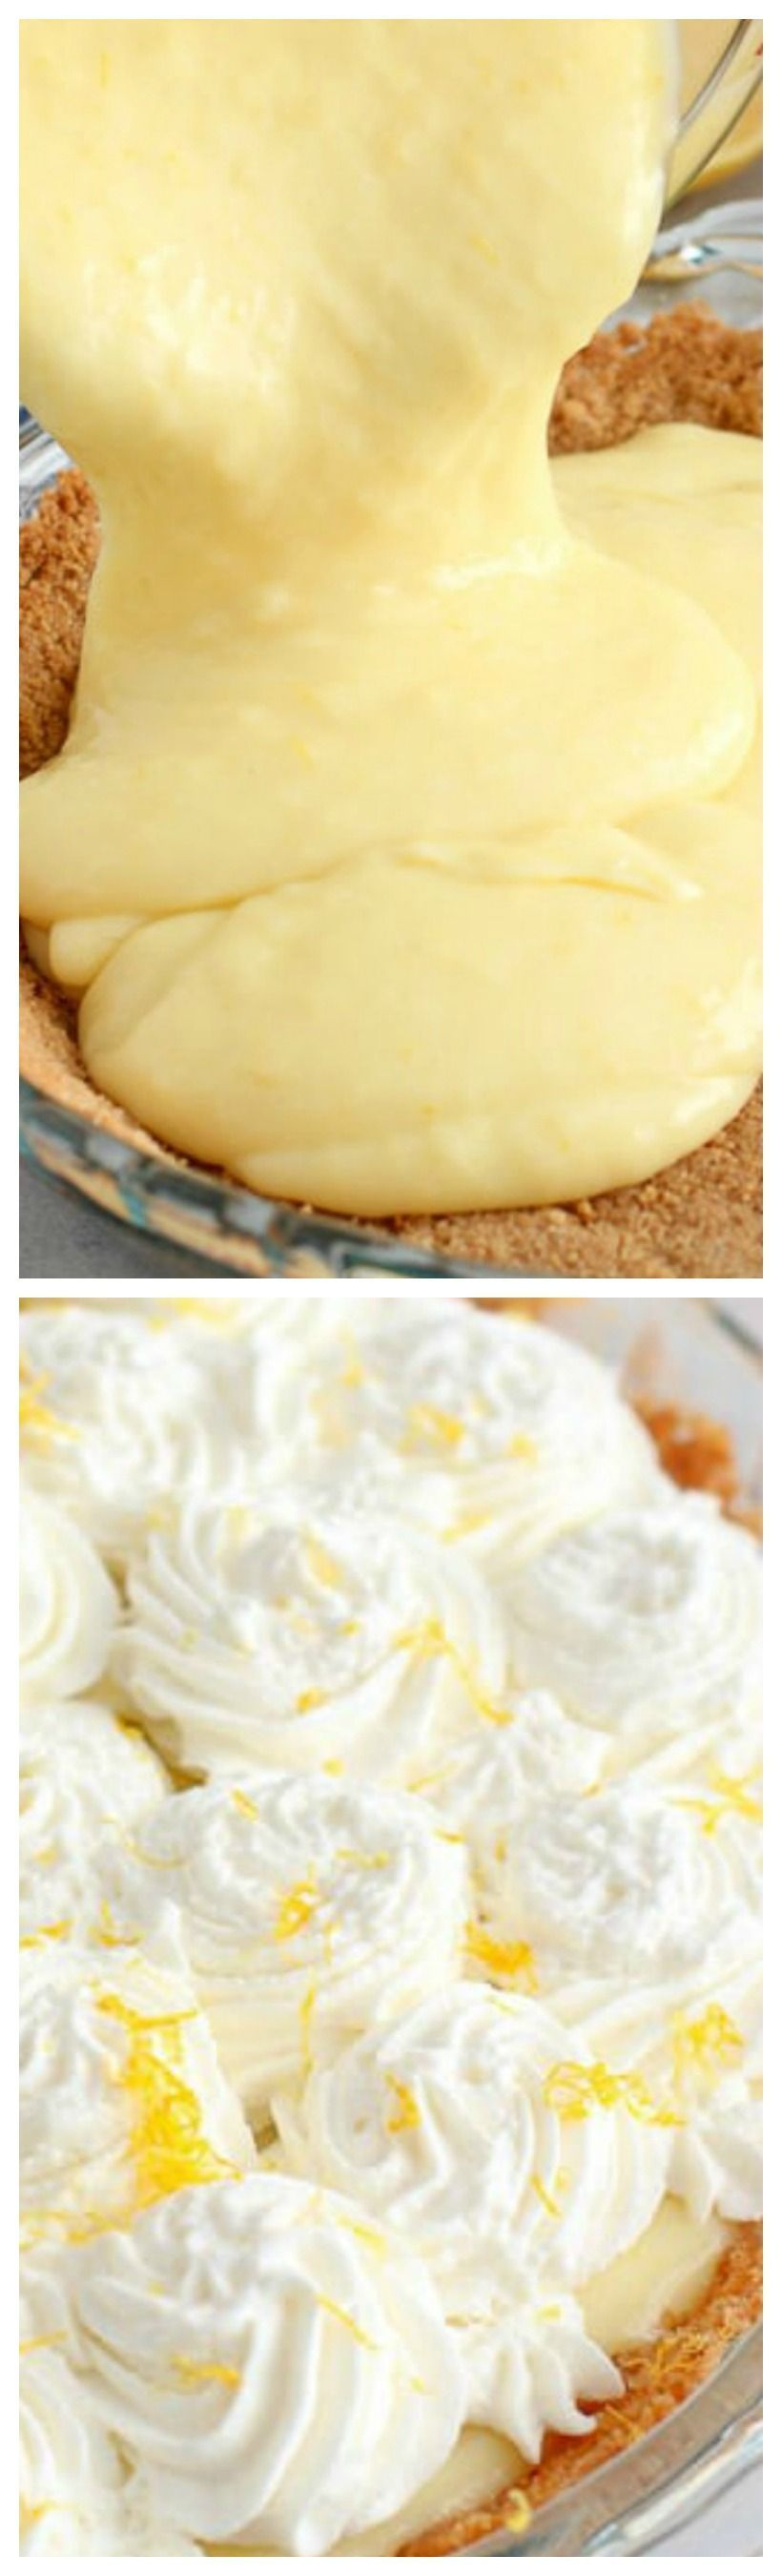 Lemon Cream Pie ~ A smooth and creamy pie with fresh lemon filling and whipped cream in a buttery graham cracker crust. #homemadegrahamcrackercrust Lemon Cream Pie ~ A smooth and creamy pie with fresh lemon filling and whipped cream in a buttery graham cracker crust. #homemadegrahamcrackercrust Lemon Cream Pie ~ A smooth and creamy pie with fresh lemon filling and whipped cream in a buttery graham cracker crust. #homemadegrahamcrackercrust Lemon Cream Pie ~ A smooth and creamy pie with fresh lem #homemadegrahamcrackercrust